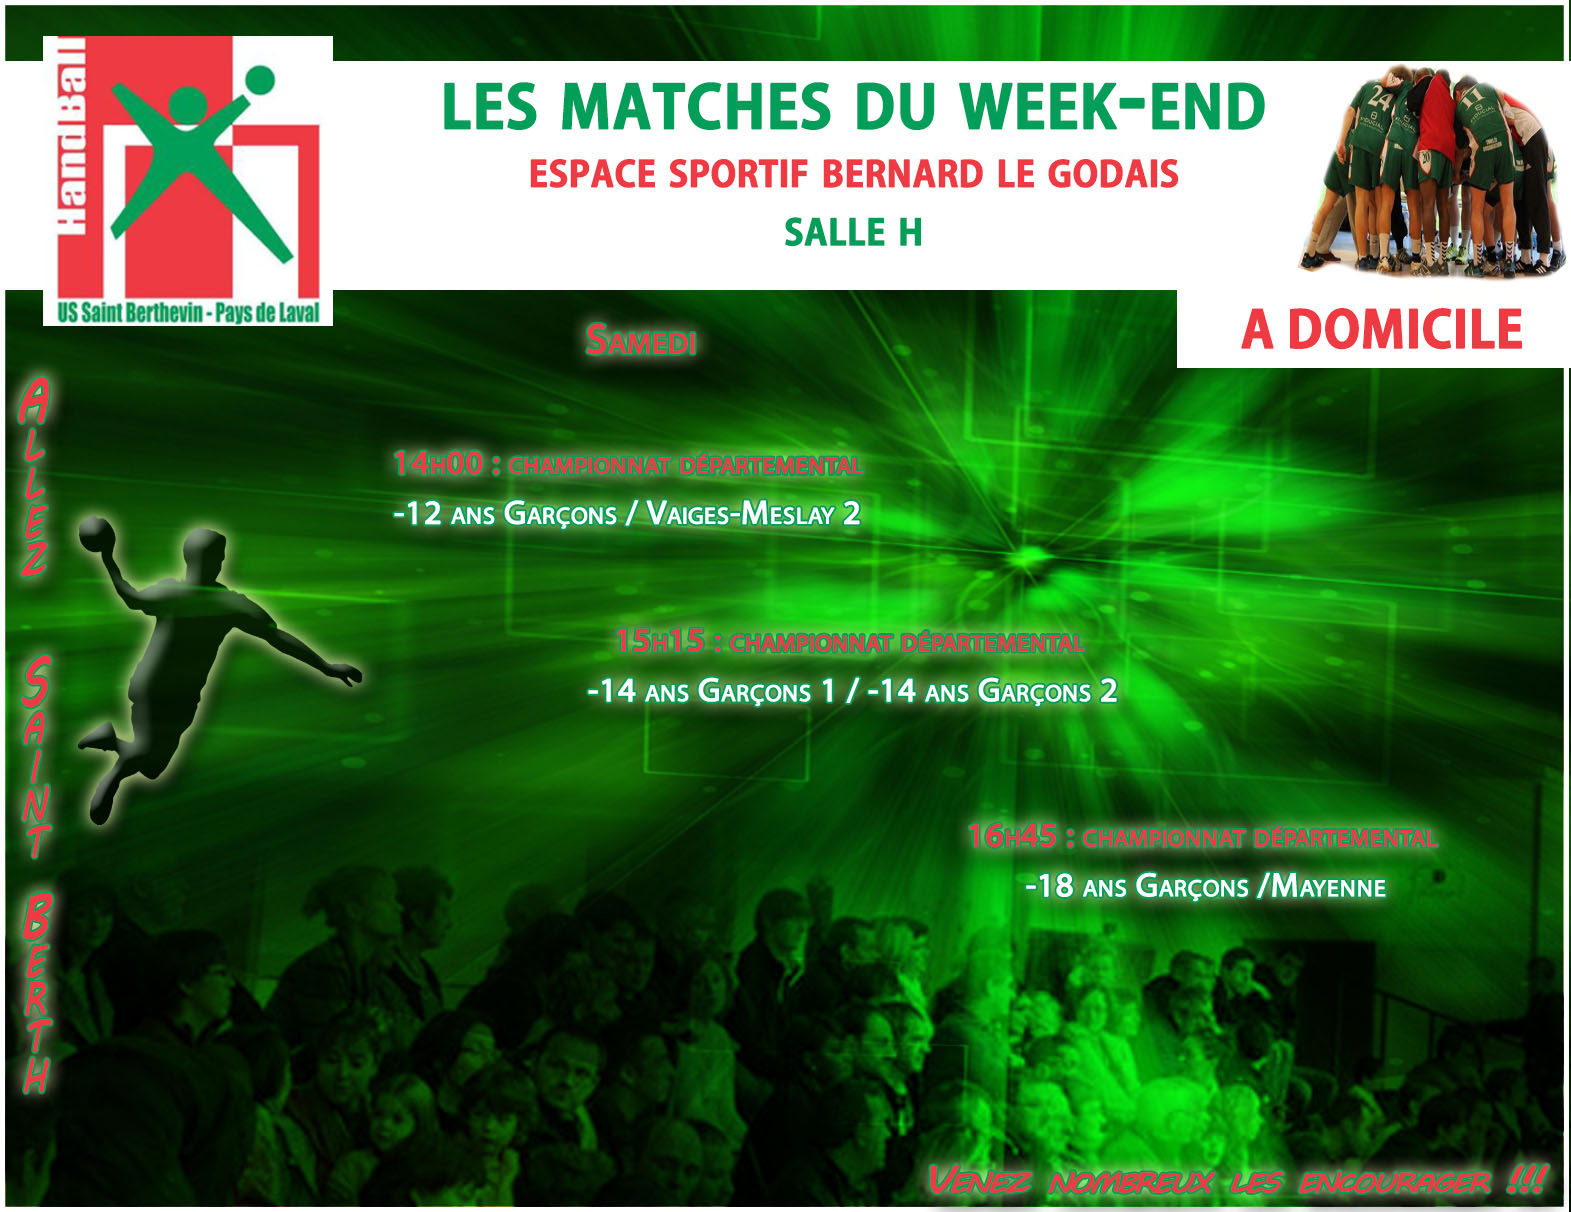 LE PROGRAMME DU WEEKEND DU 19/11/2016 A DOMICILE